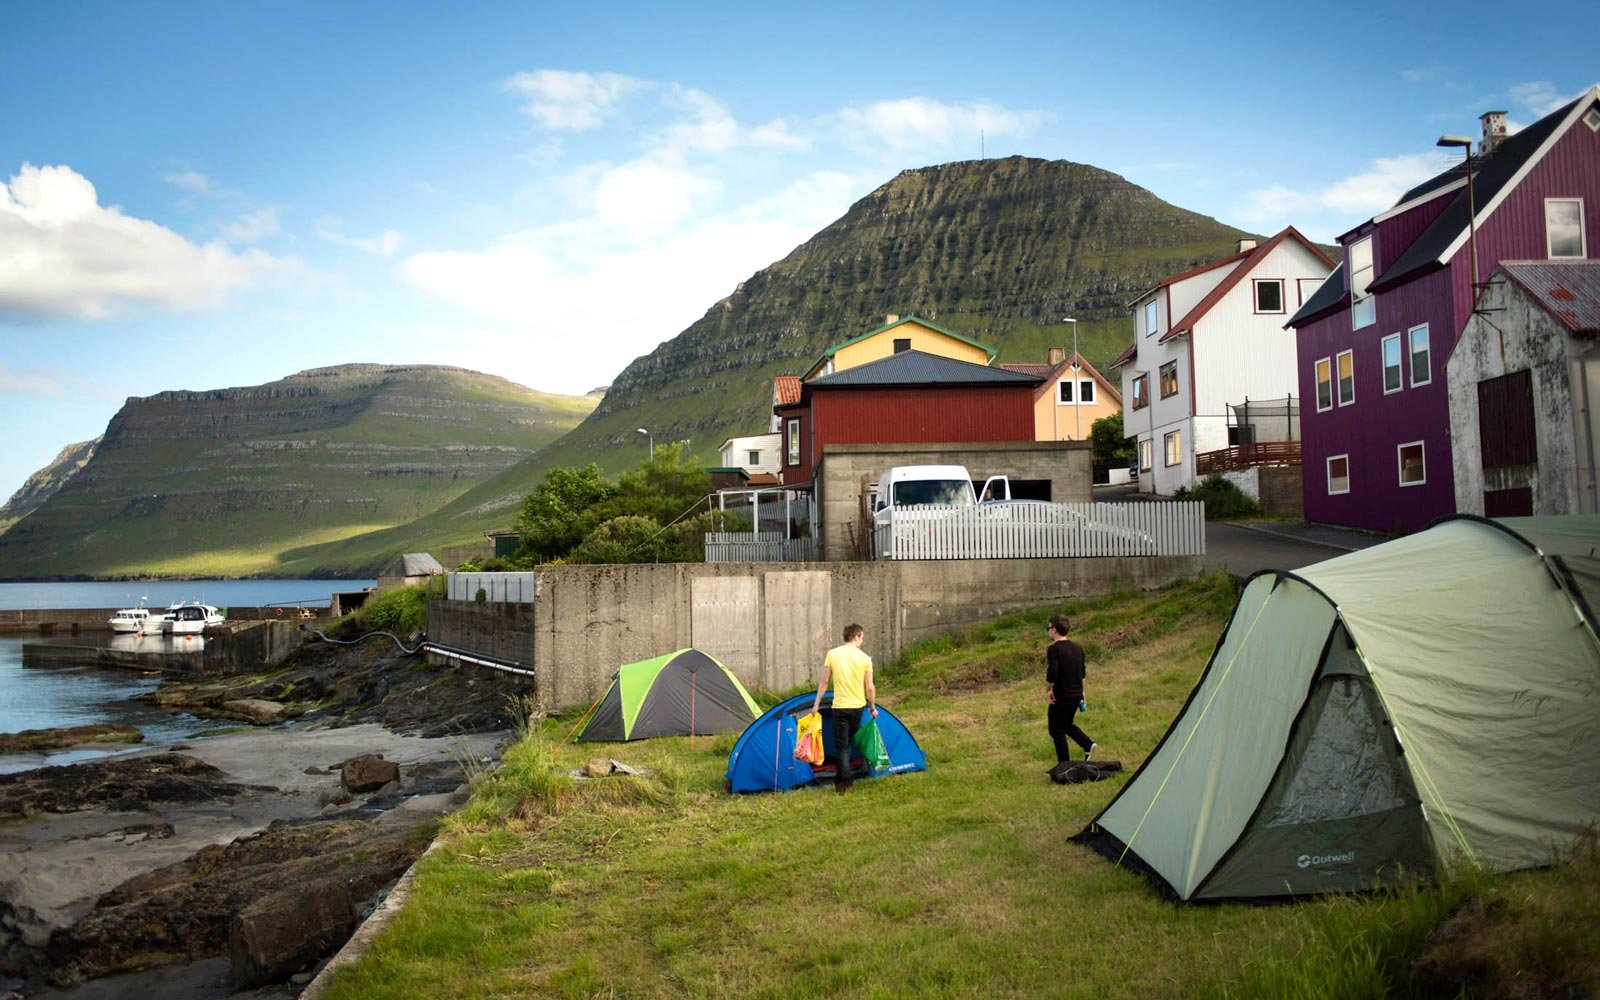 Camping in the Faroe Islands